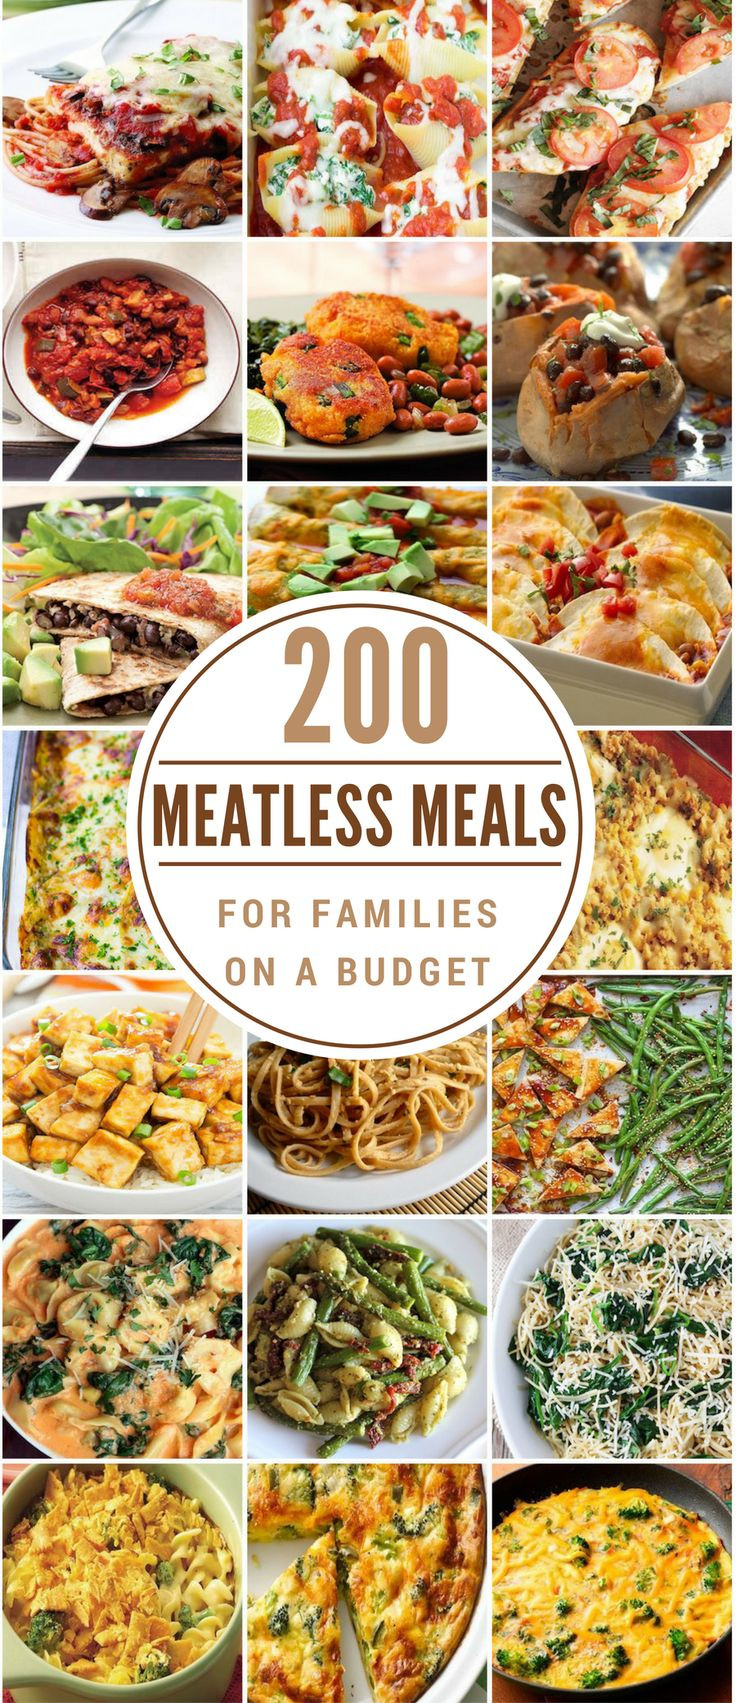 Vegetarian Recipes Cheap  200 Meatless Meals for Families on a Bud